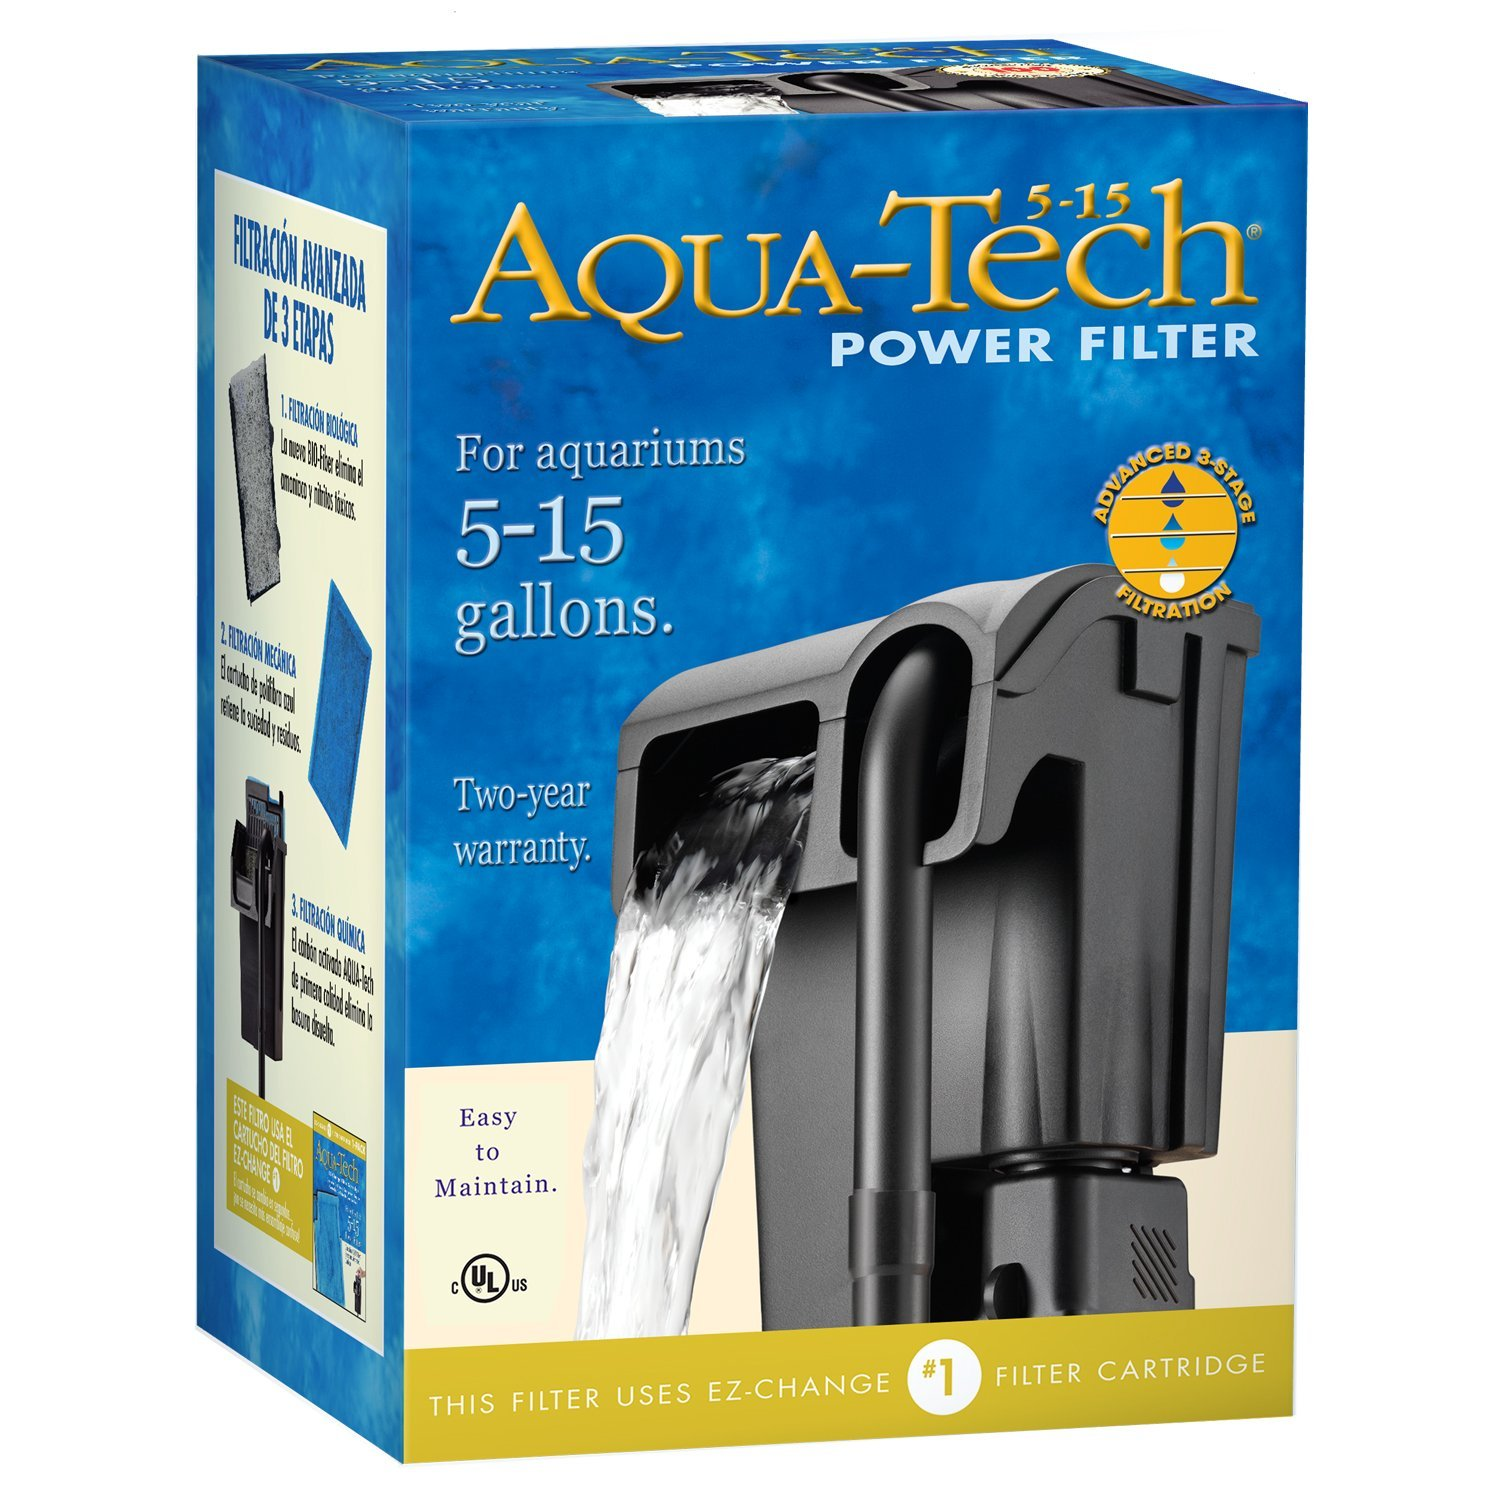 Aqua-Tech Power Aquarium Filter, Water 3in1 aquariums Tube Mount 20403060 Filters Aquarium Hanging EZChange 3Pack 70GPH 10 Head 15 15Inch Media For 2040.., By AquaTech